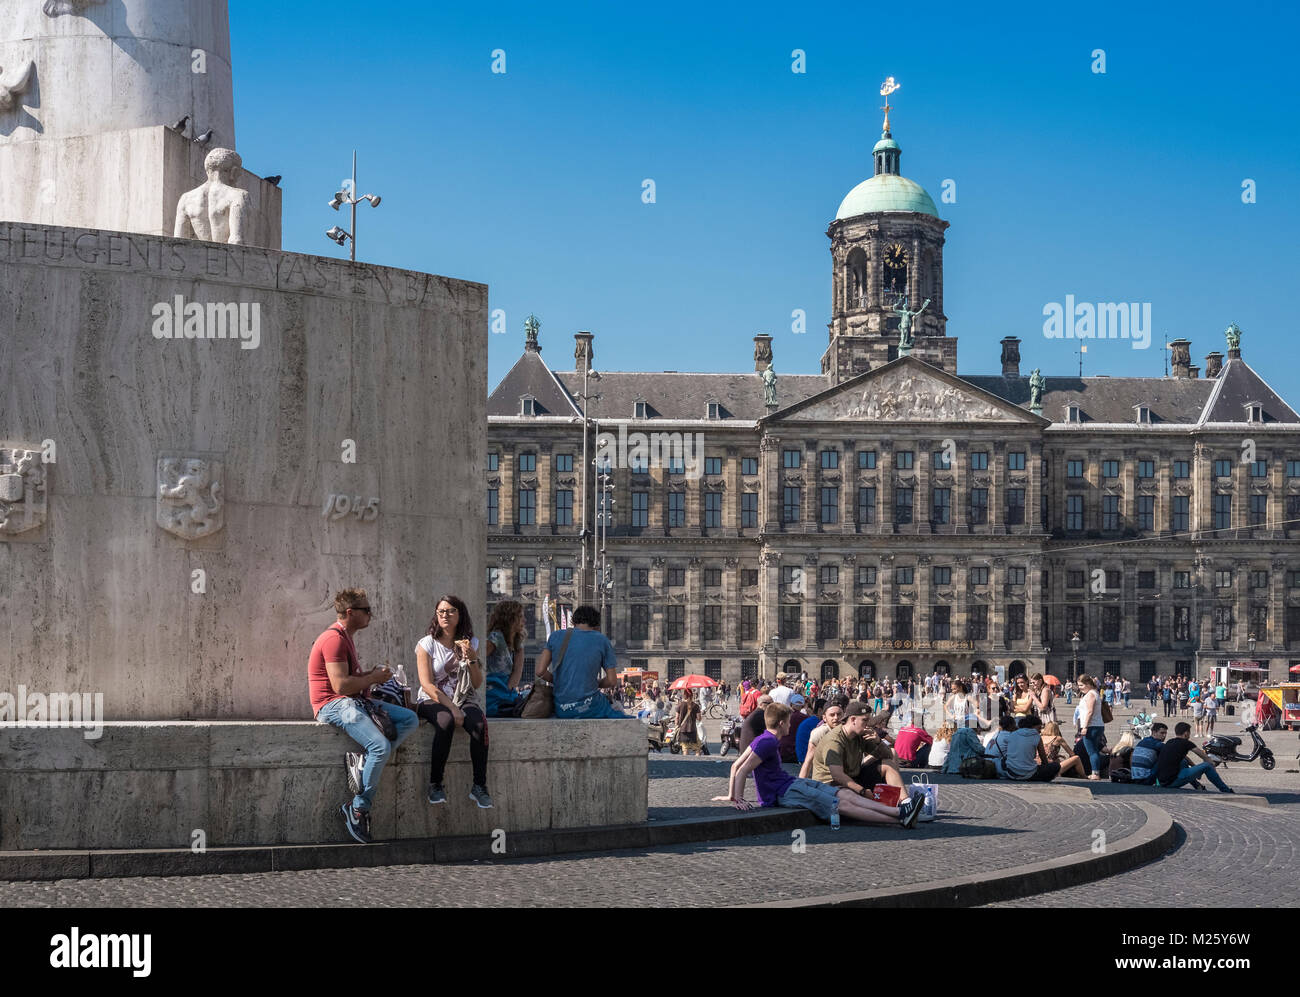 Les attractions touristiques populaires de Palais Royal et Monument National, la Place du Dam, centre ville quartier, Photo Stock